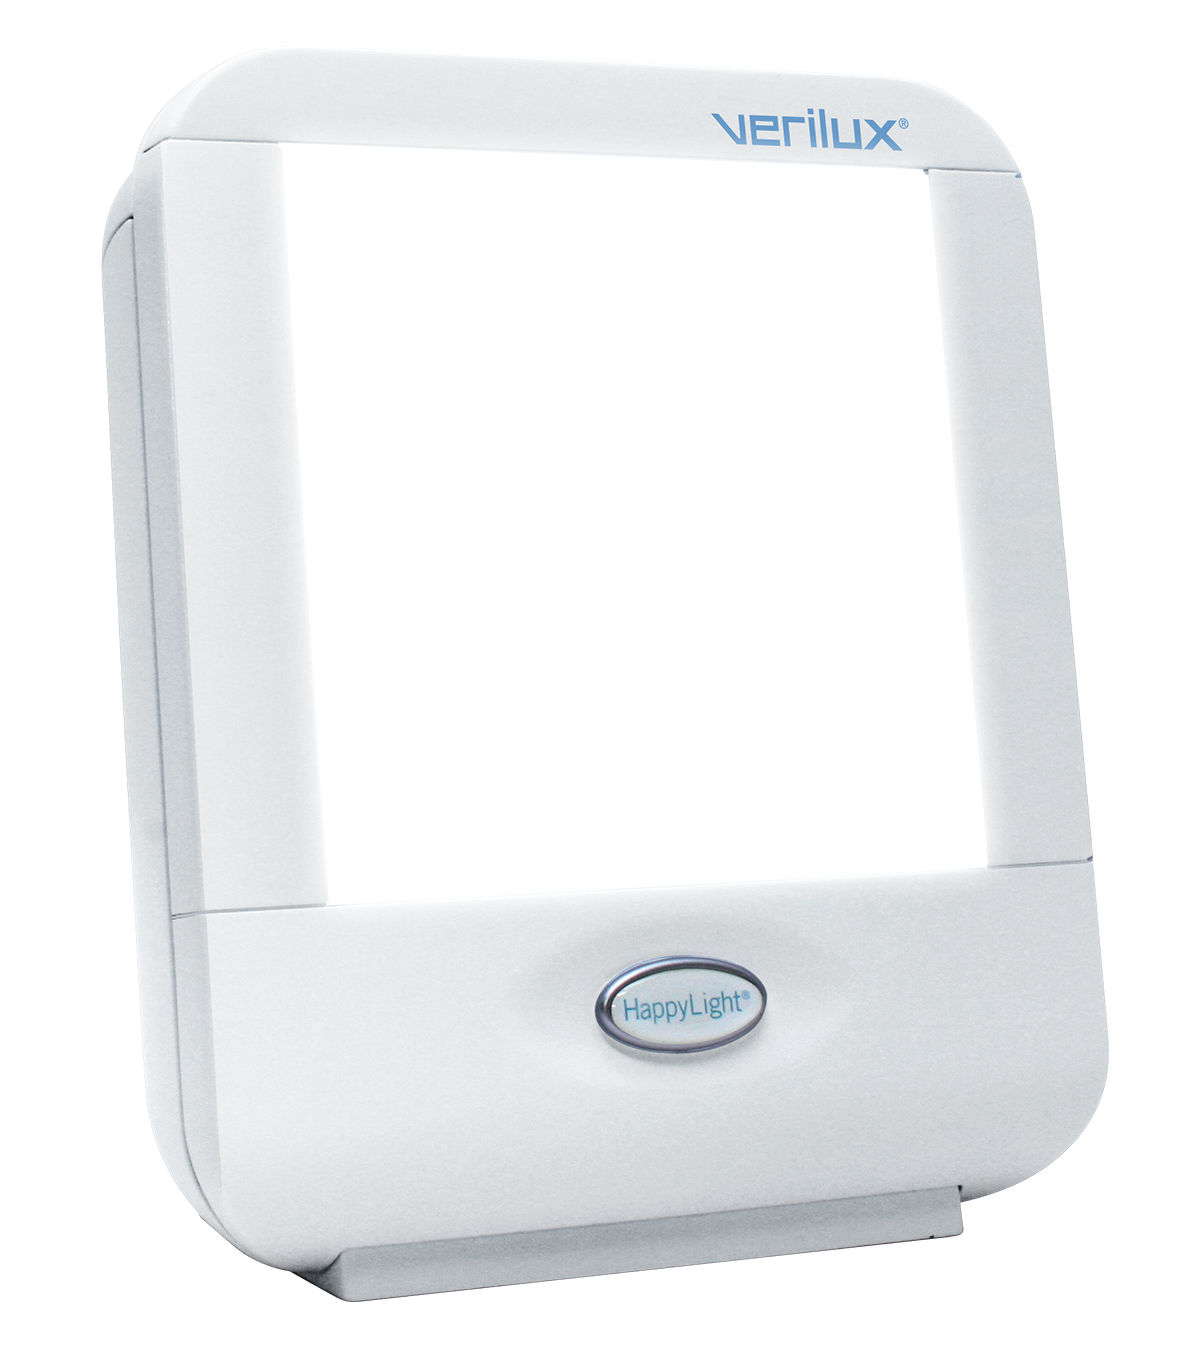 Verilux HappyLight Liberty 5K Natural Spectrum Energy Lamp